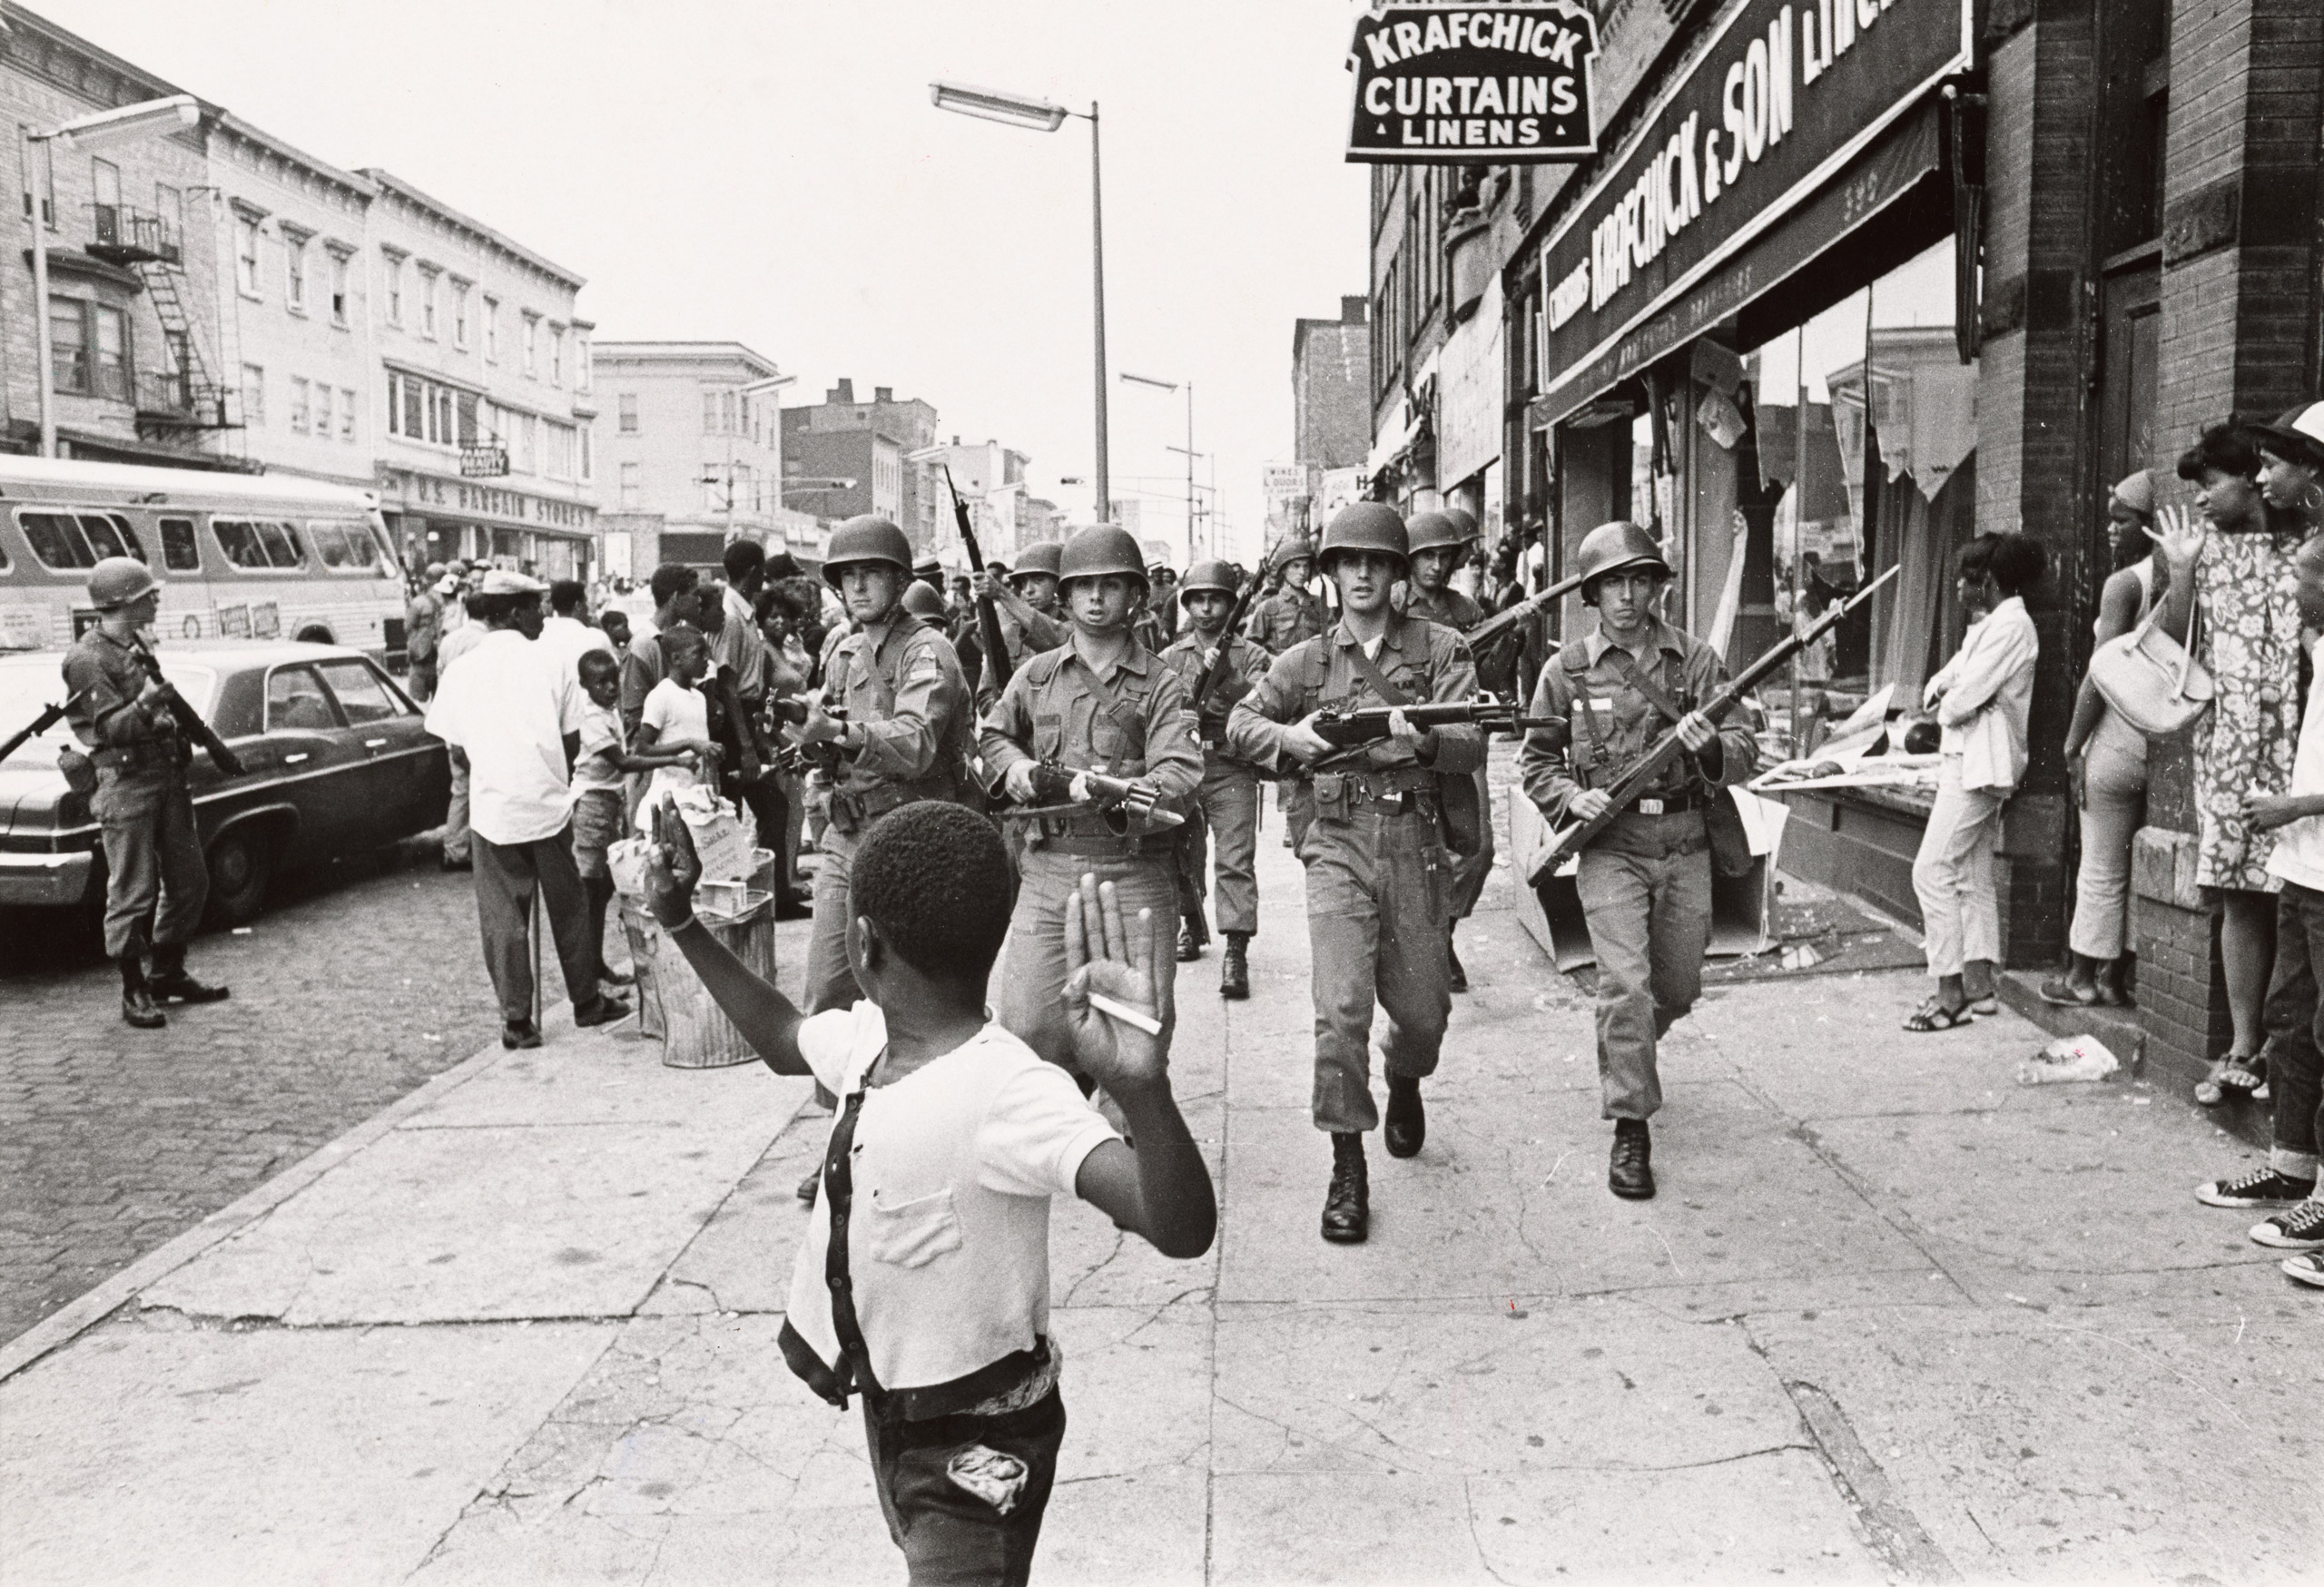 Photograph depicting the rioting in Newark, NJ by residents, following the arrest of a black cabdriver, John W. Smith, by two Newark policemen, John DeSimone and Vito Pontrelli in the summer of 1967.